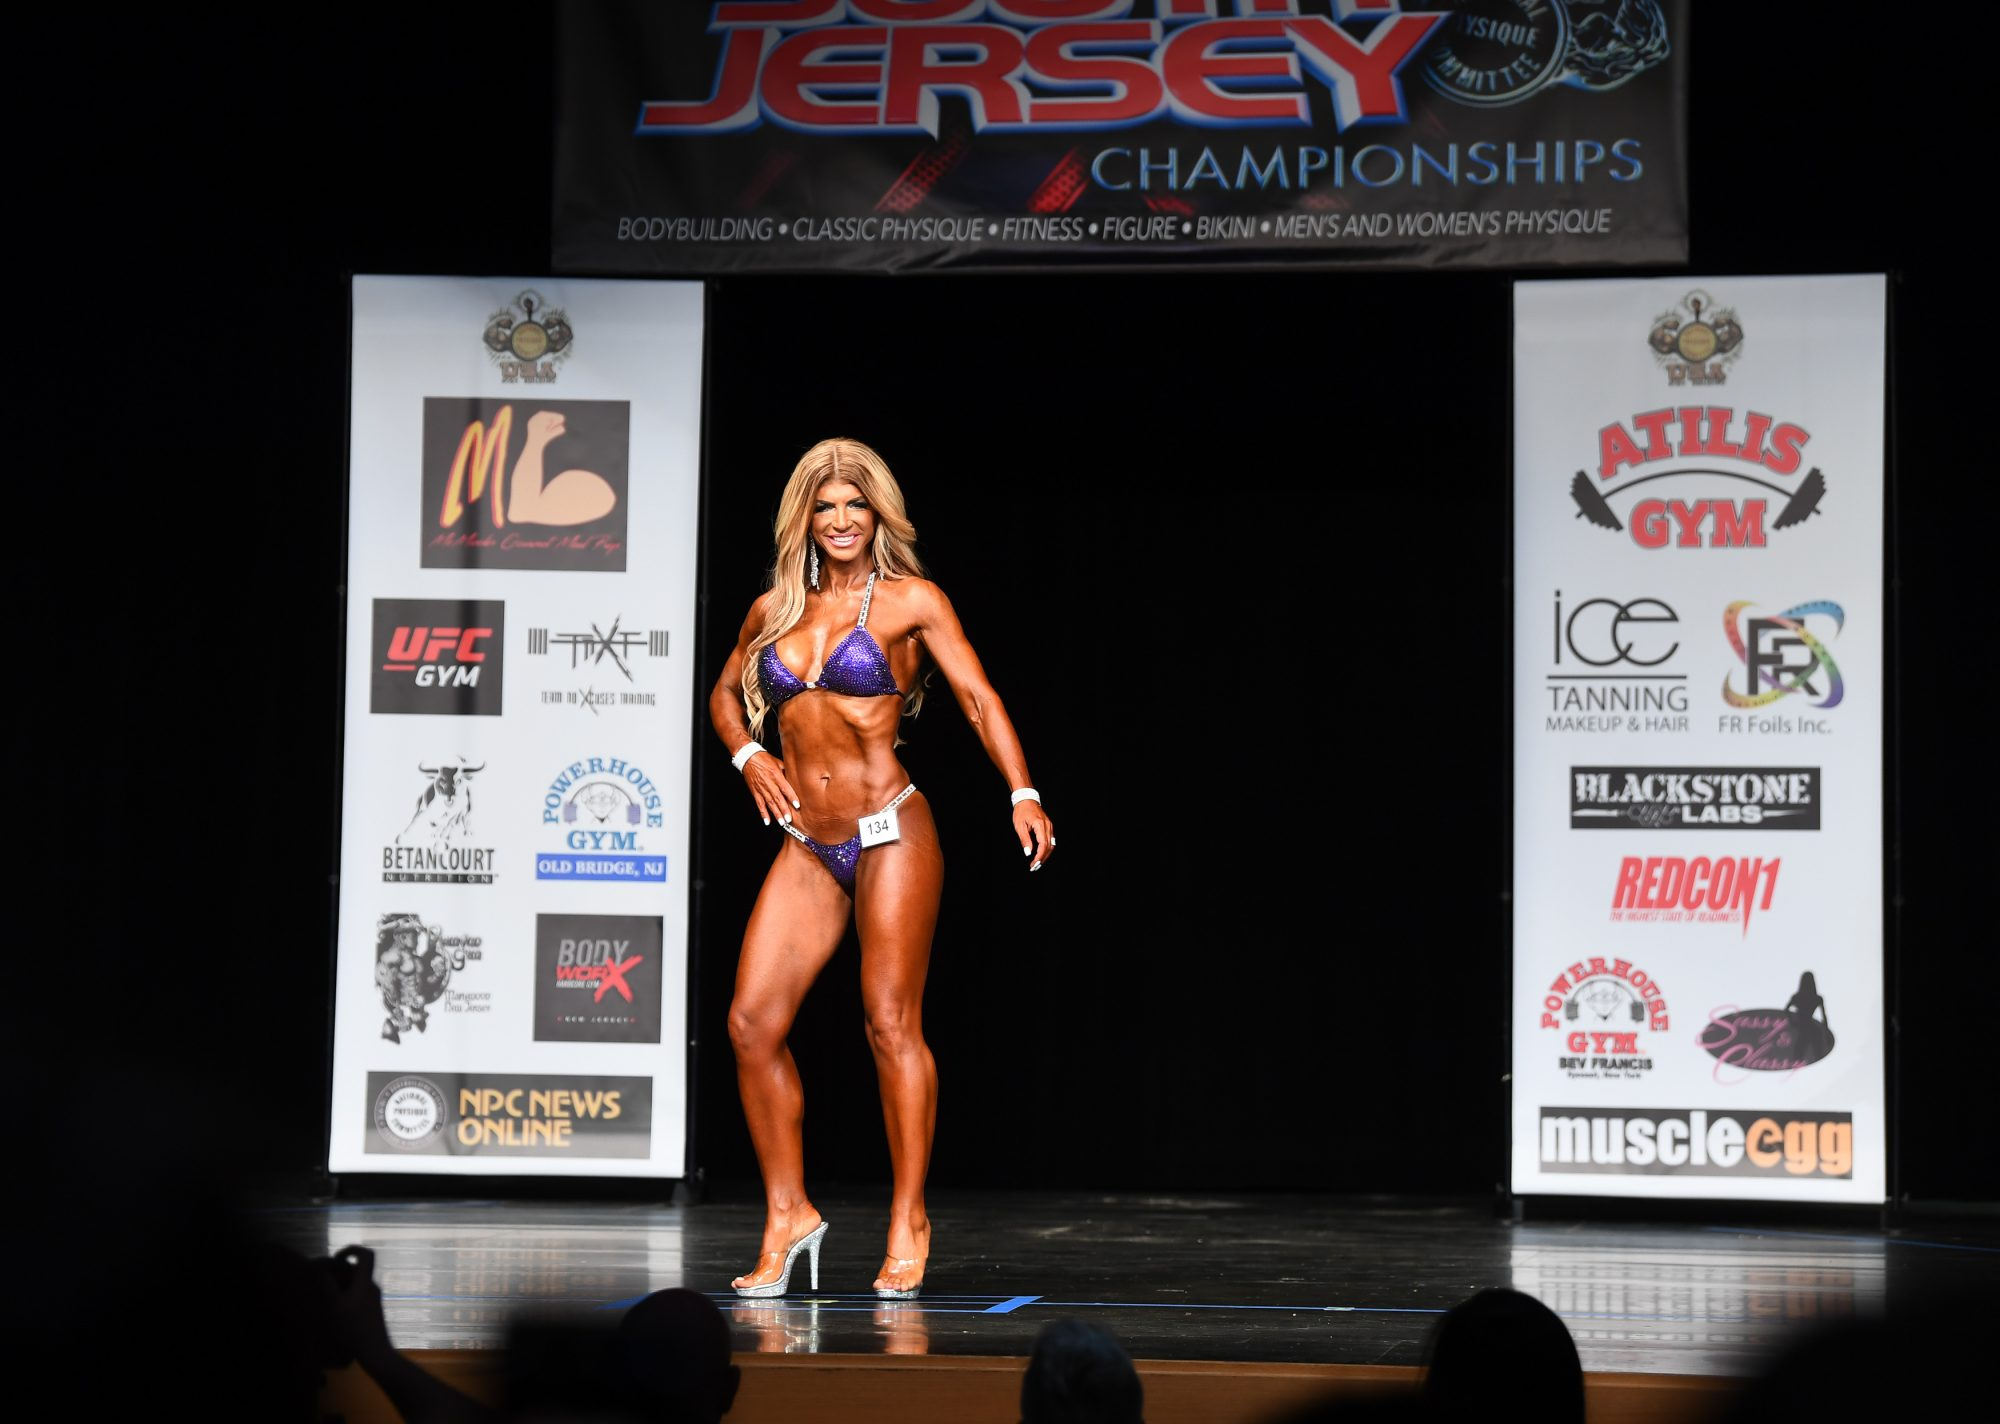 Teresa Giudice Proudly Displays Her Muscles in a Bikini at Bodybuilding Competition